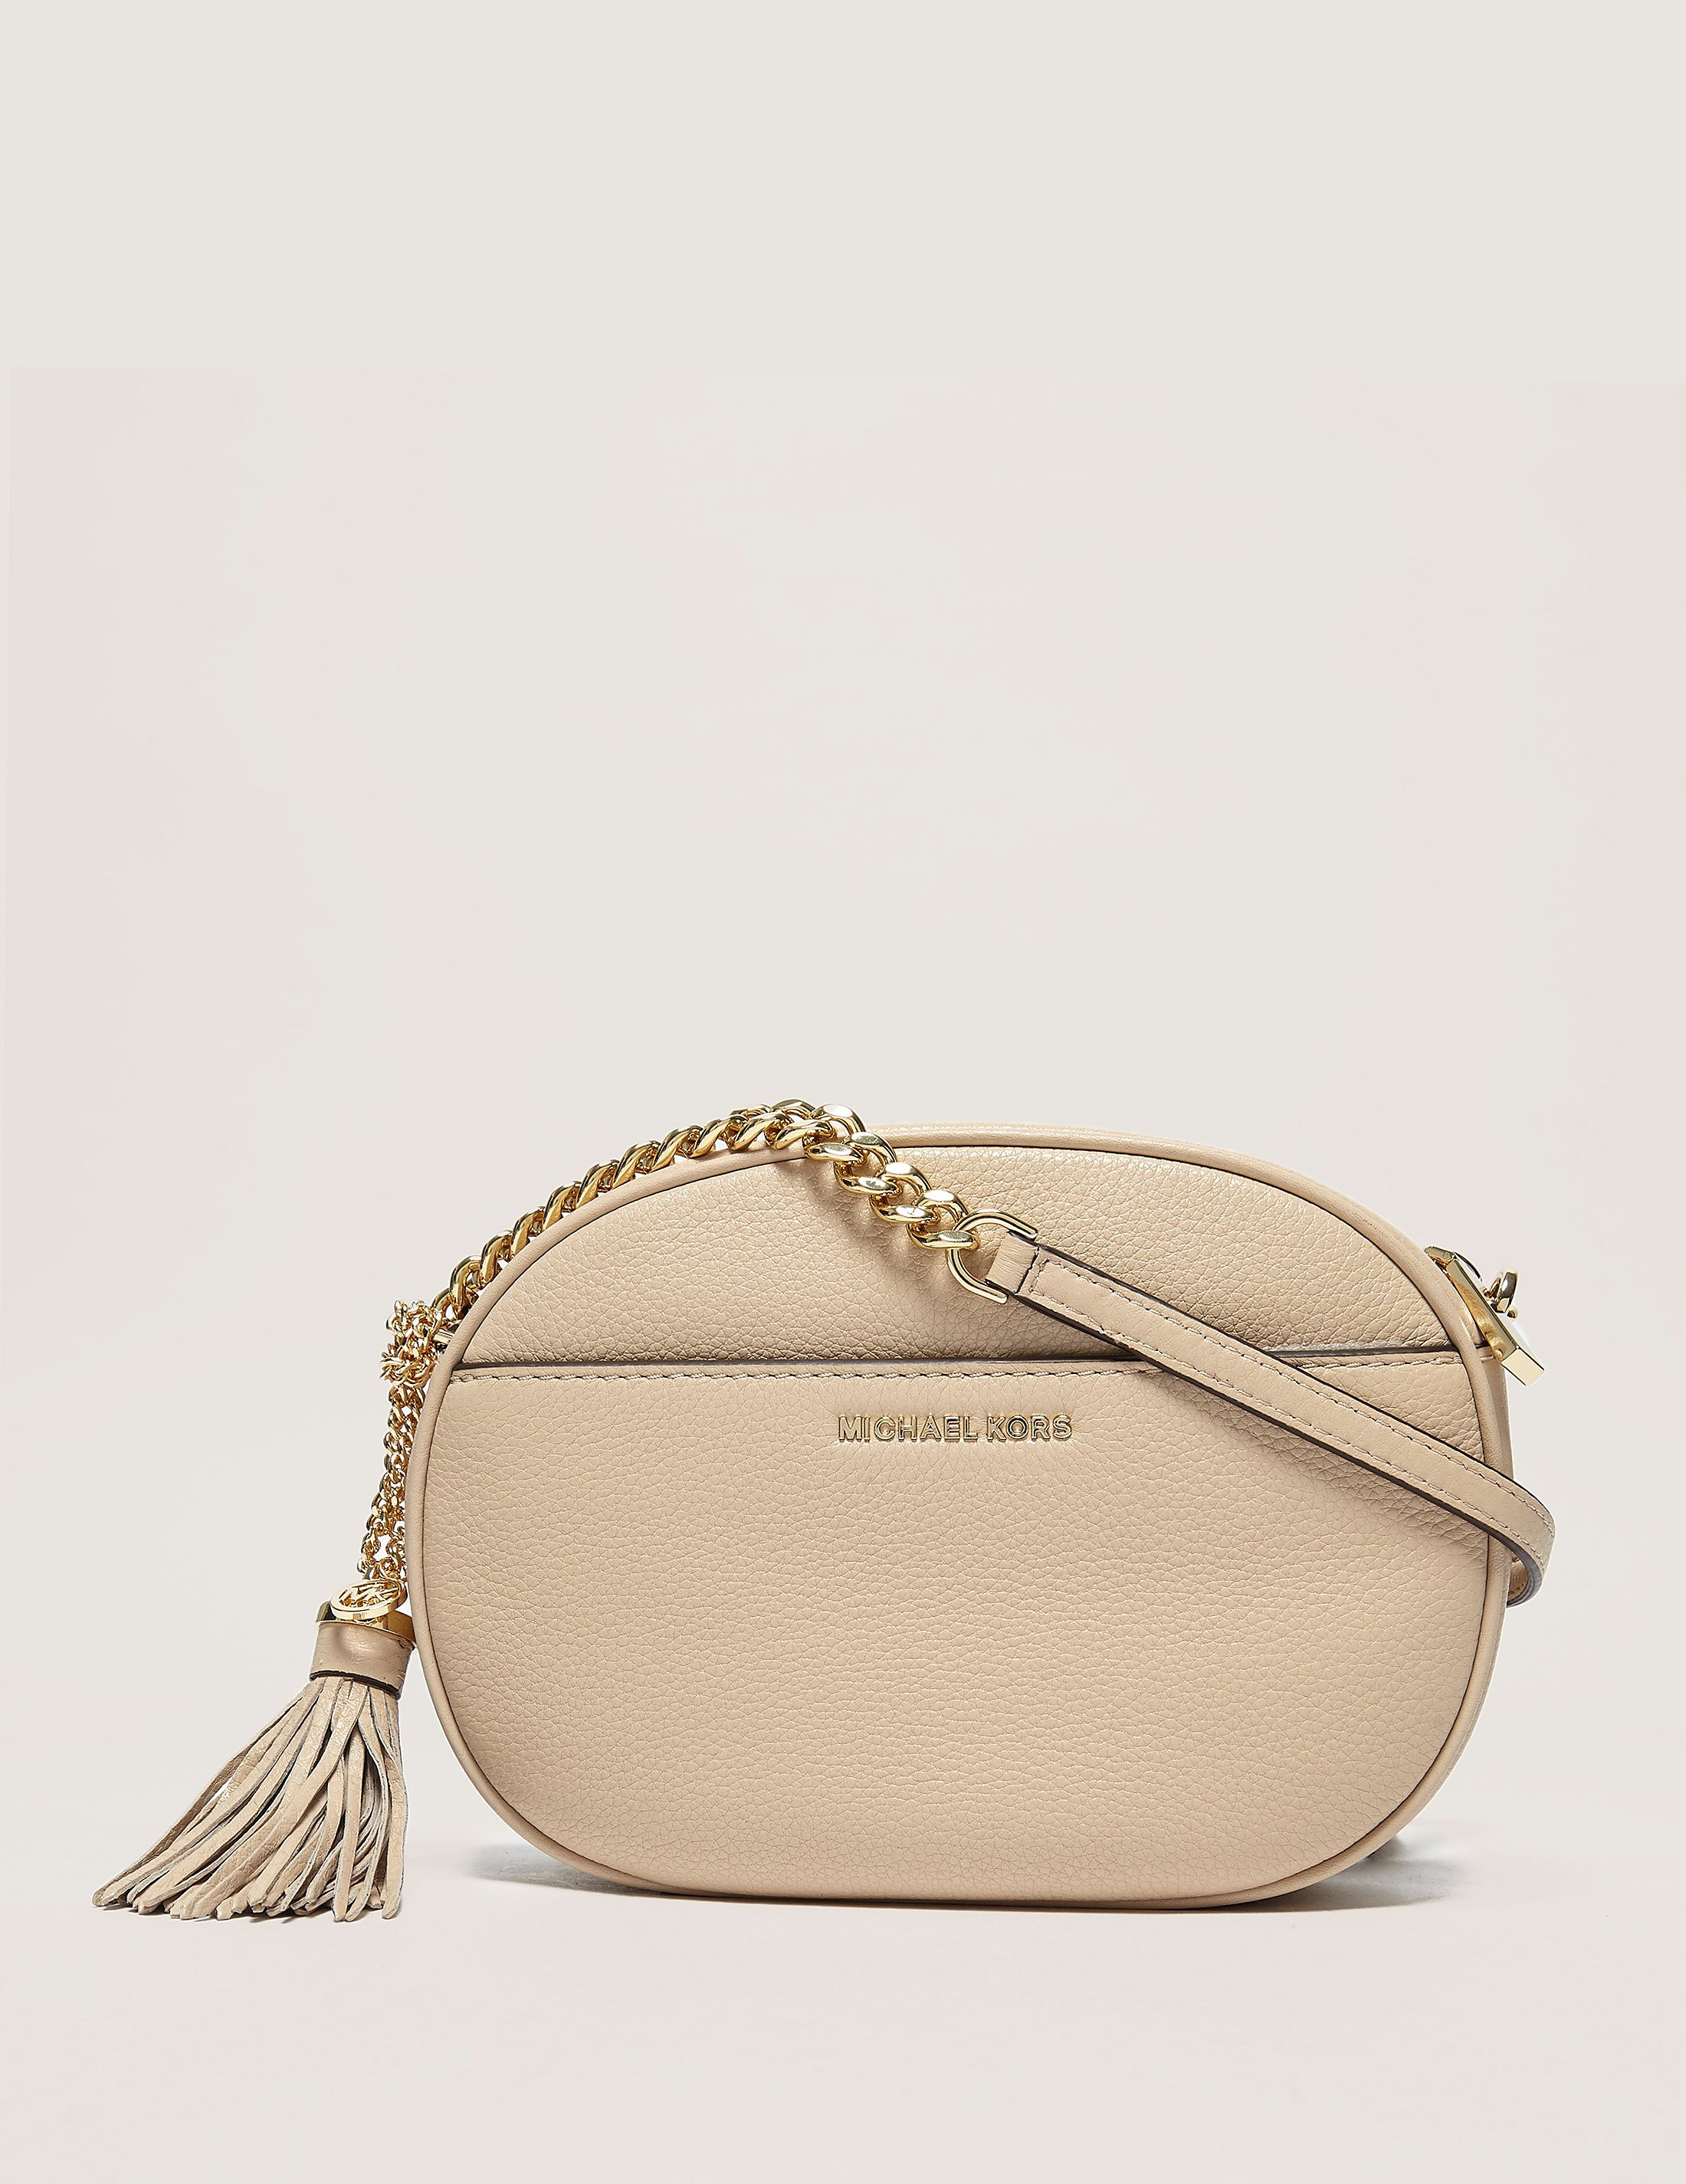 Michael Kors Ginny Medium Leather Crossbody